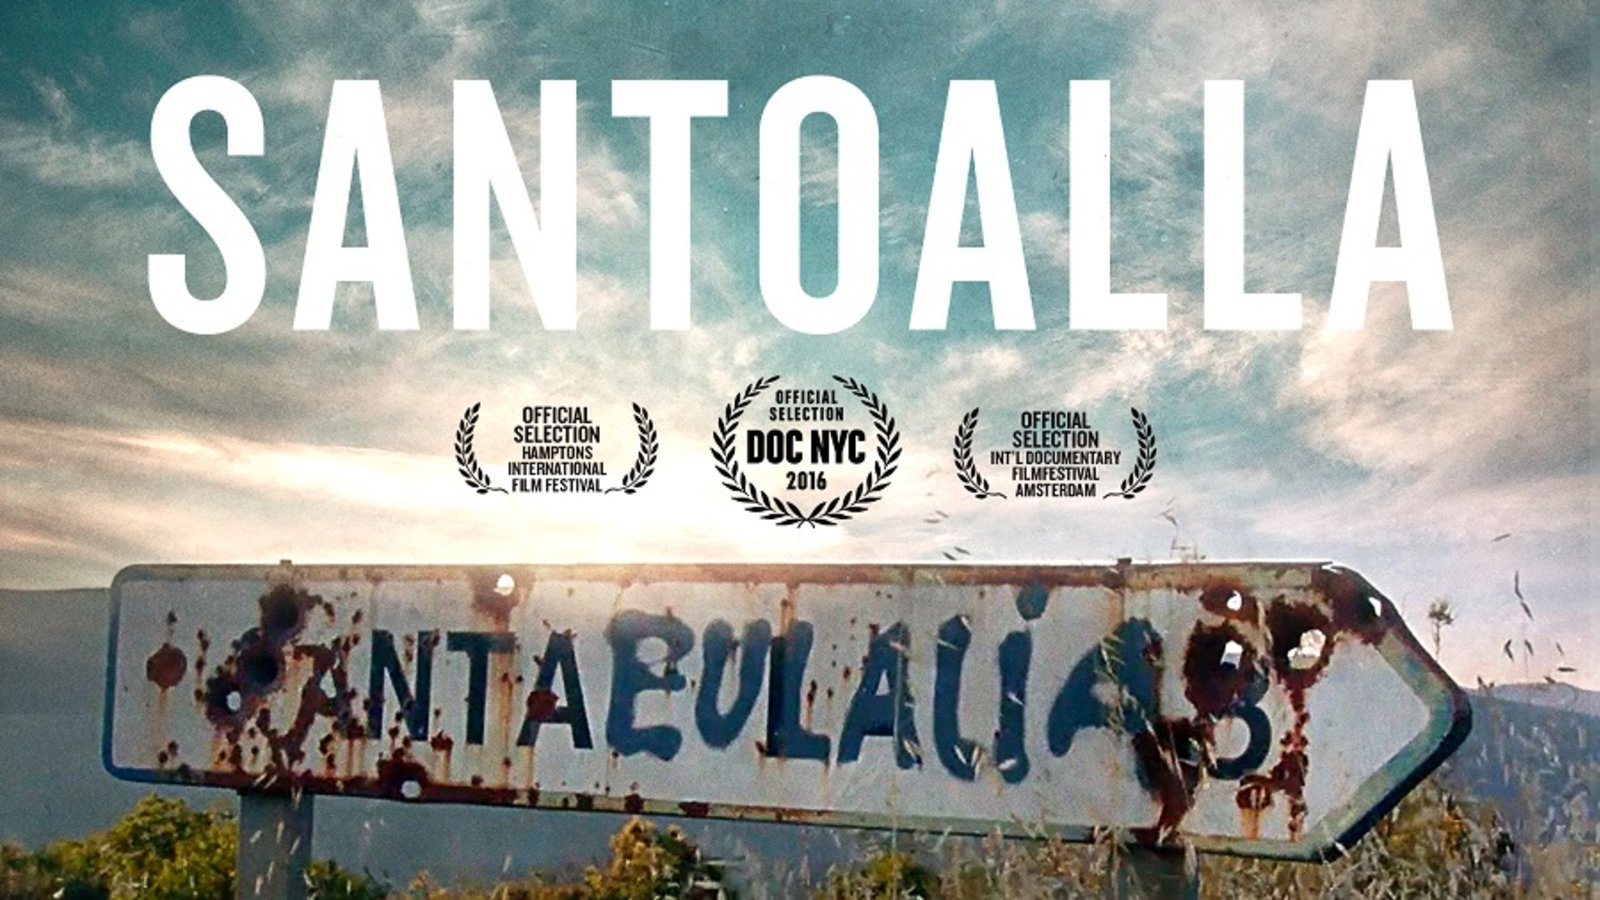 Santoalla - A Missing Expatriate in a Small Spanish Village